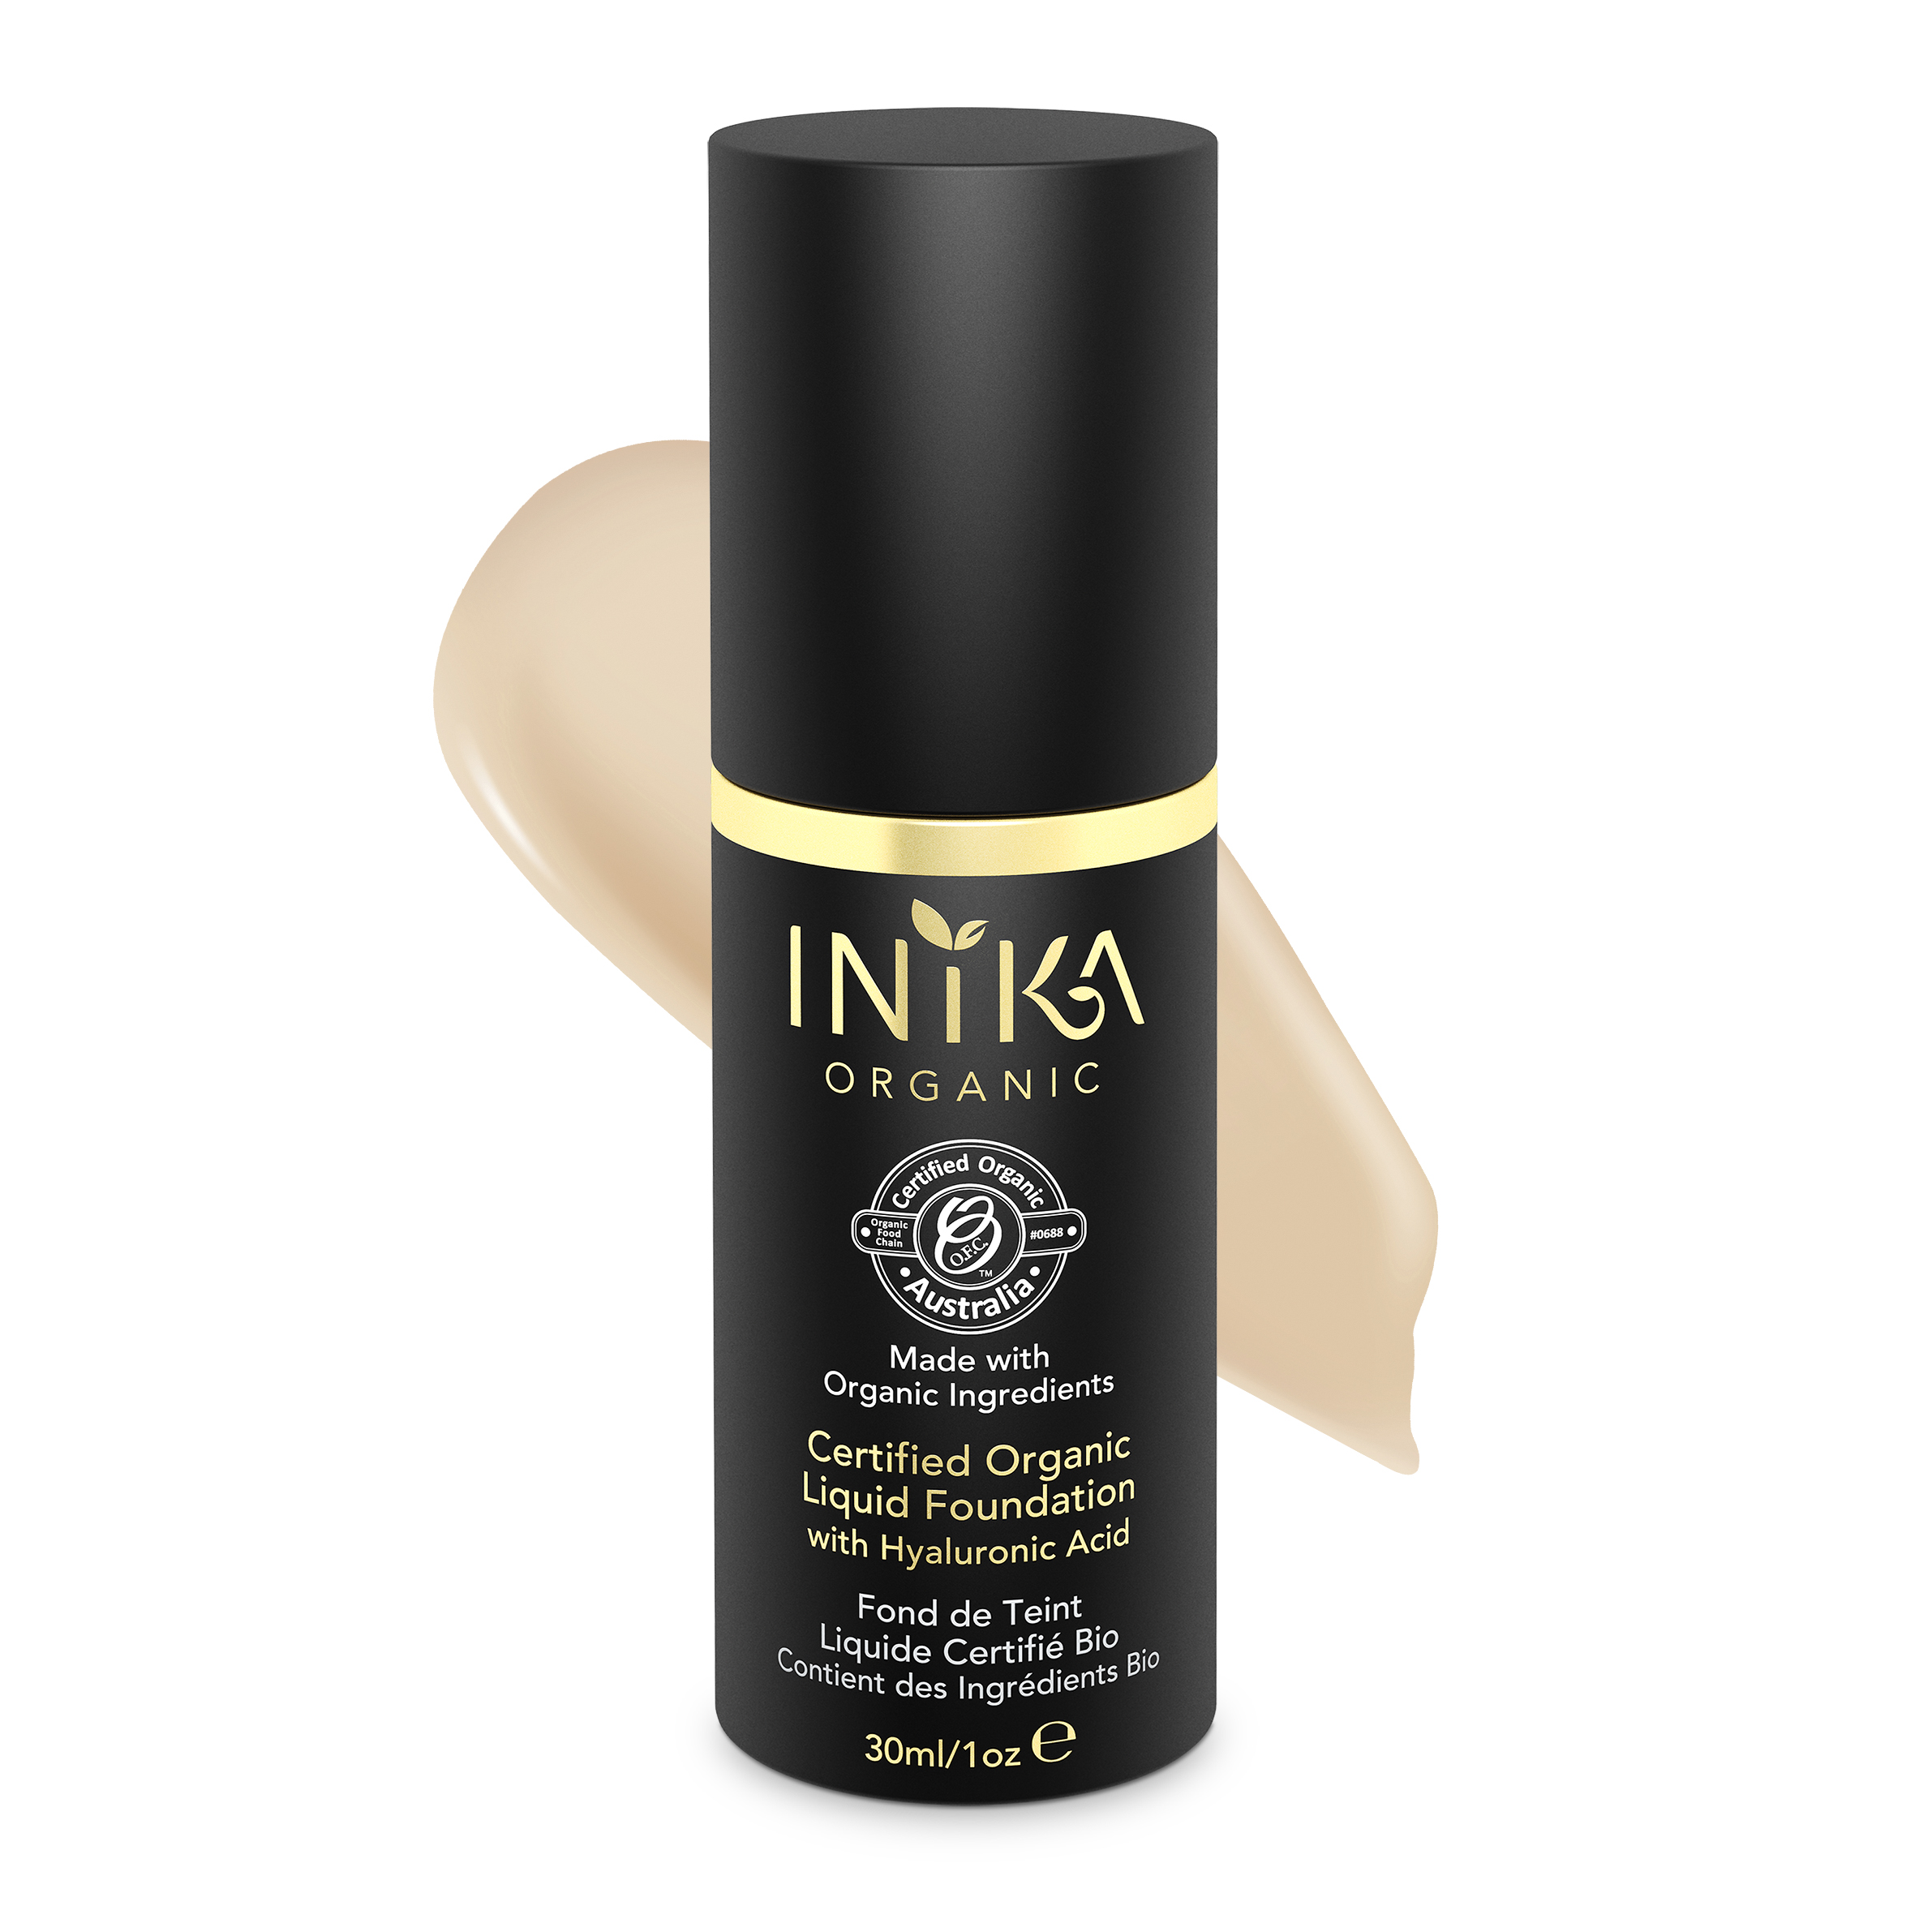 INIKA Certified Organic Liquid Foundation Nude 30ml With Product